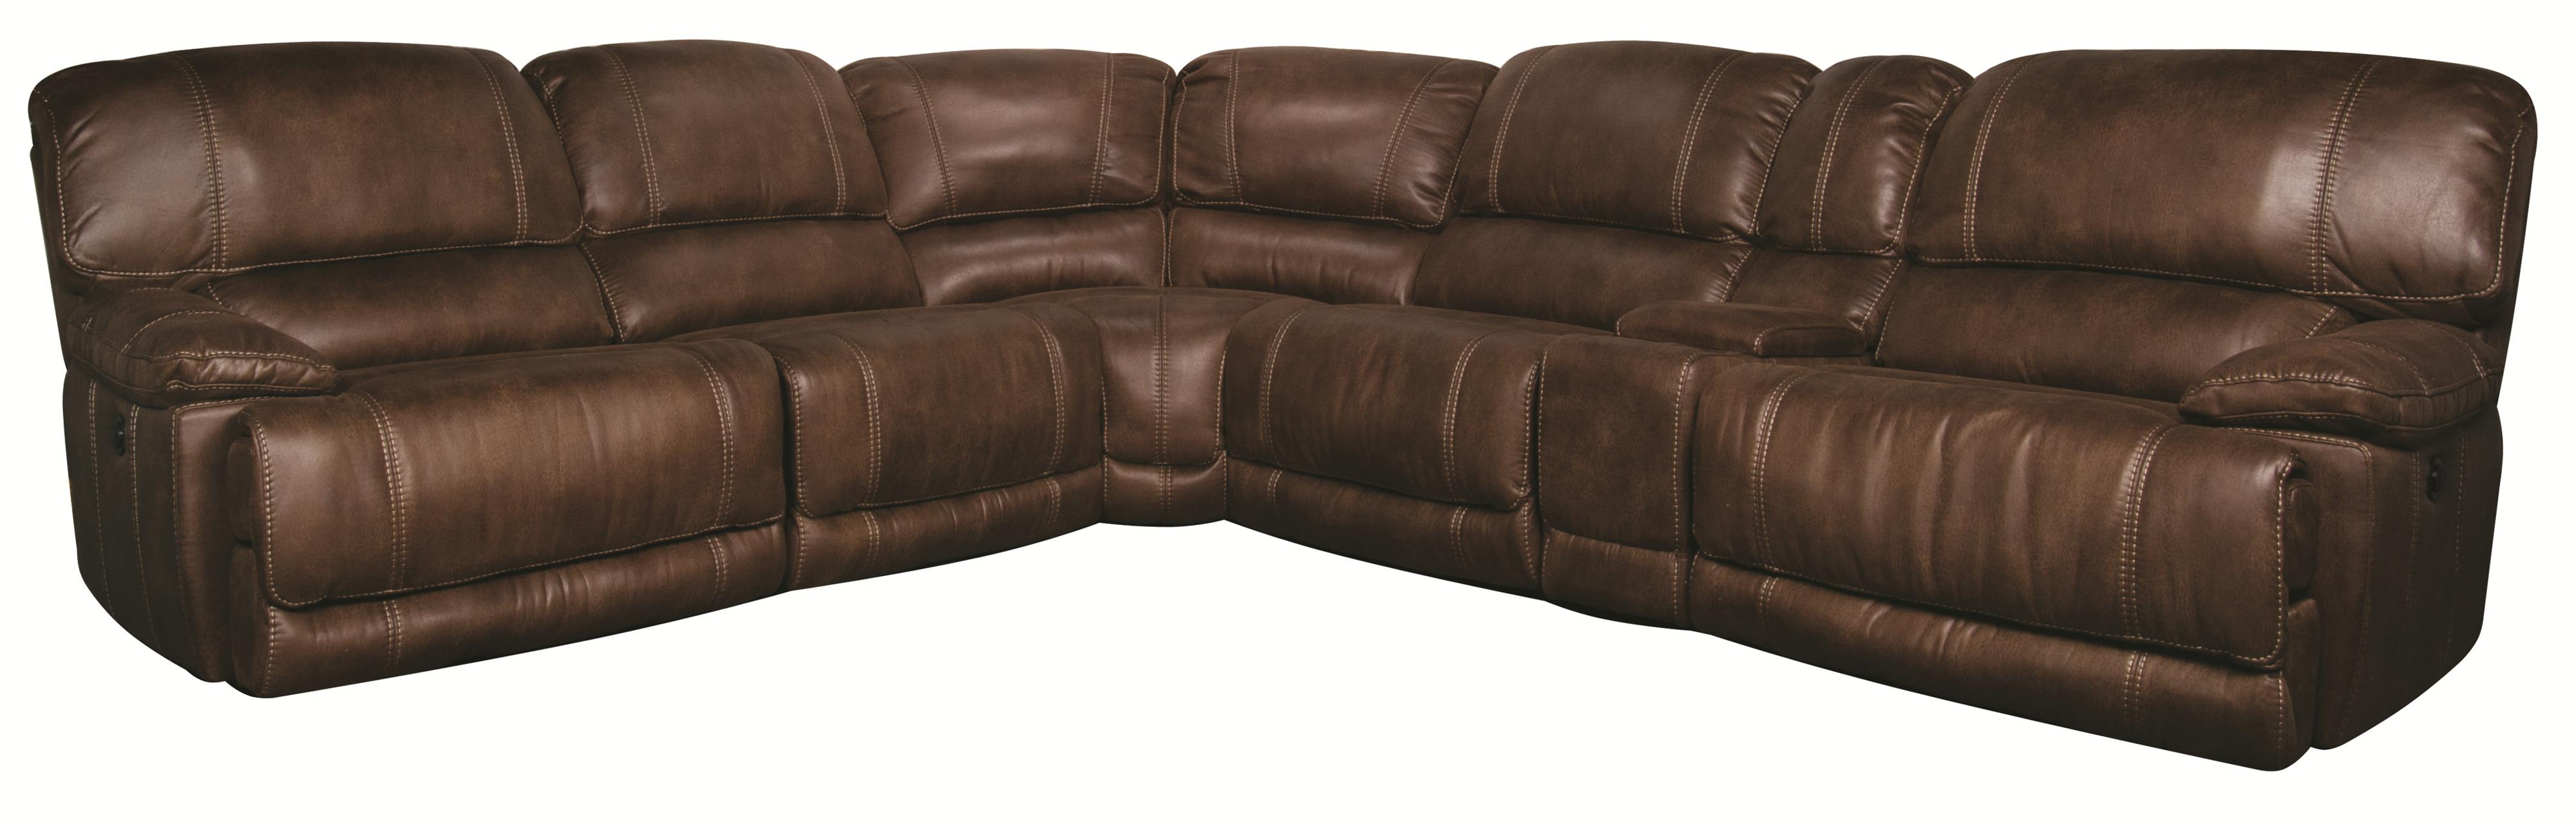 Morris Home Furnishings Sandra Sandra 6-Piece Power Sectional  - Item Number: 555555555555555555